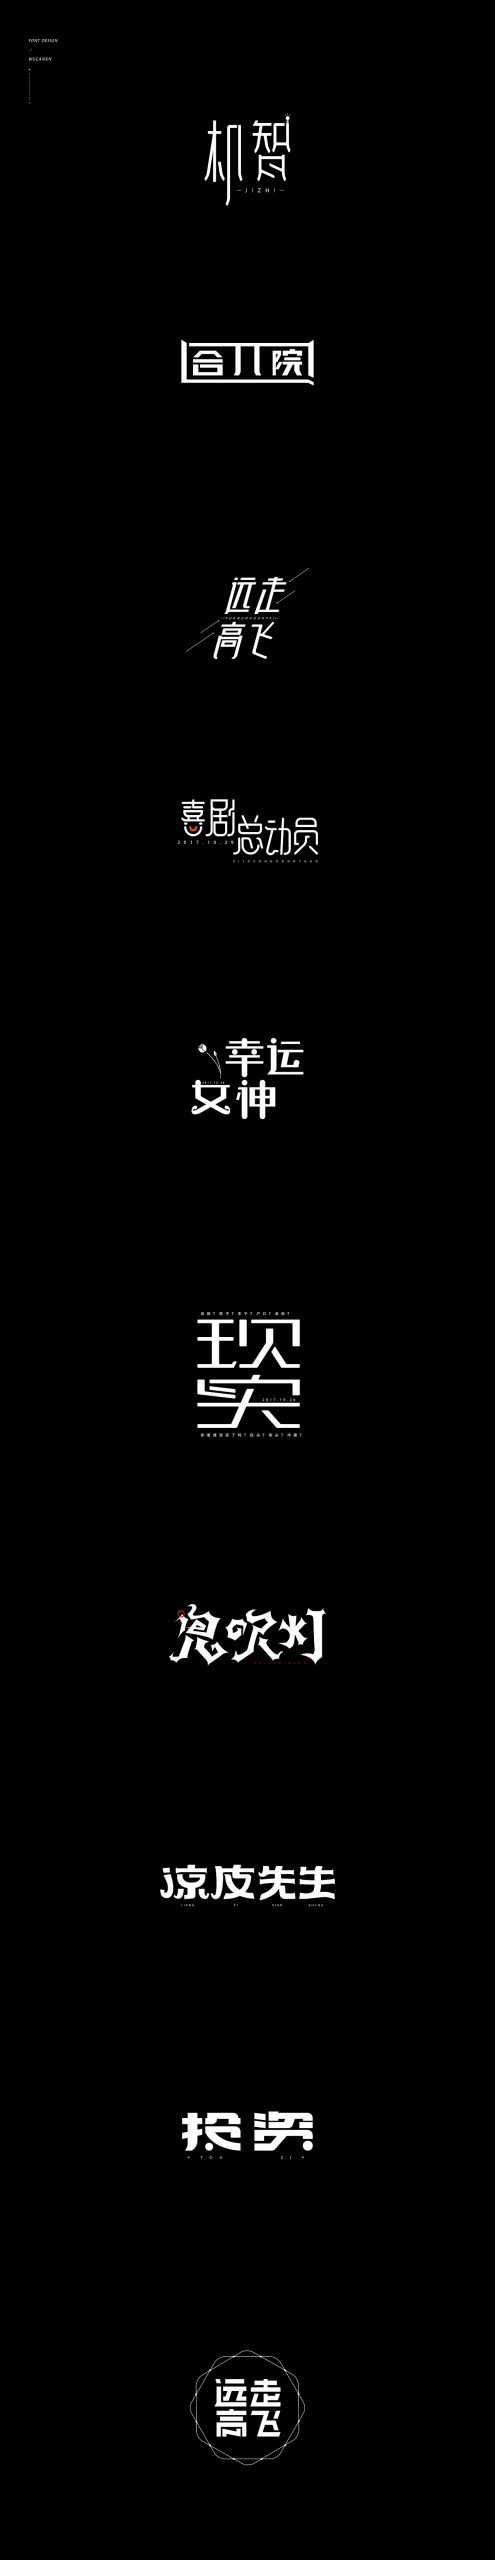 Chinese Creative Font Design-Simple Style Font Design Series